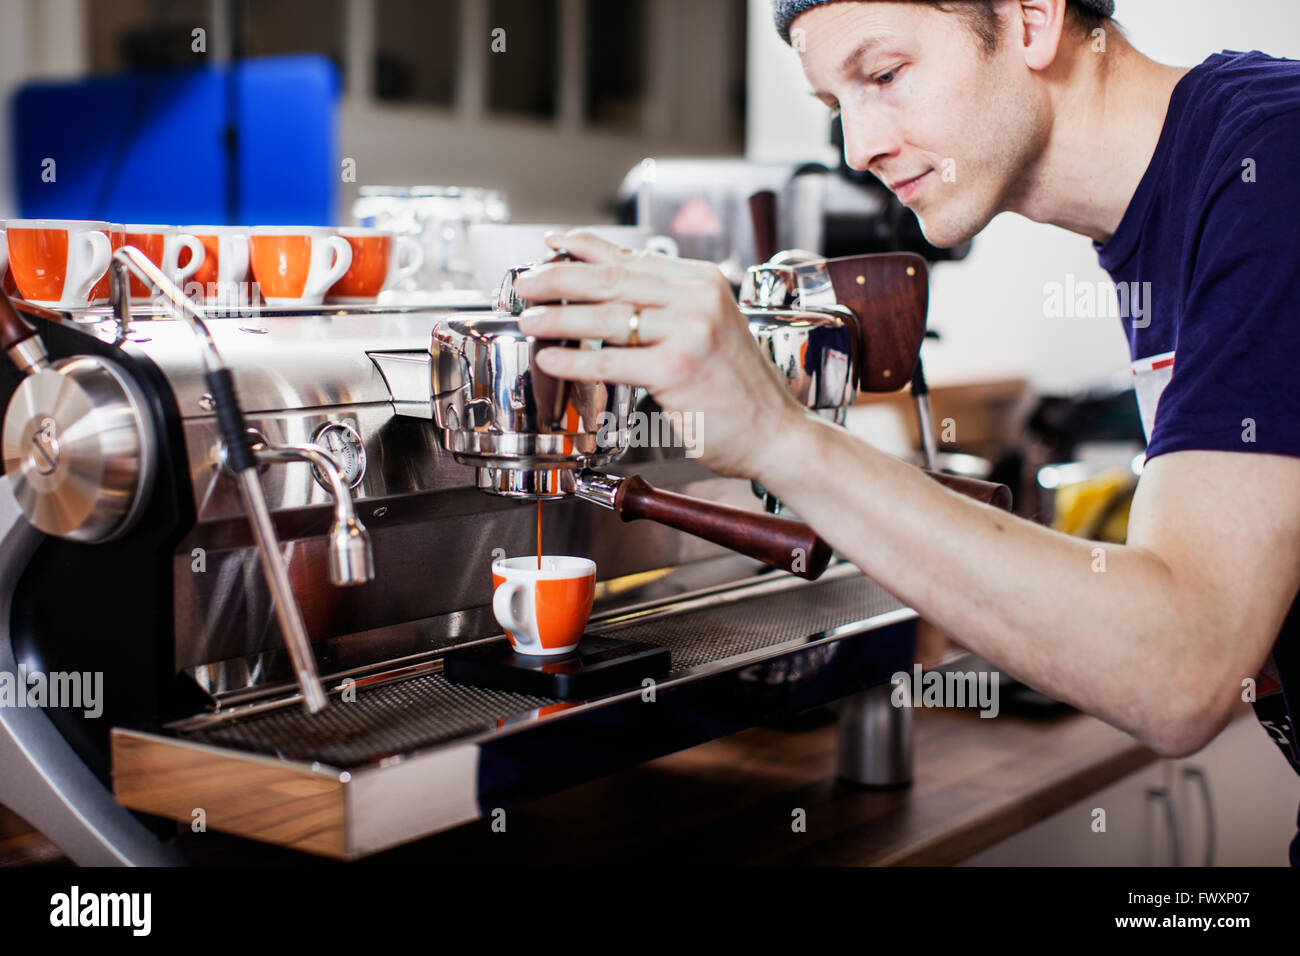 Sweden, Barista making coffee - Stock Image